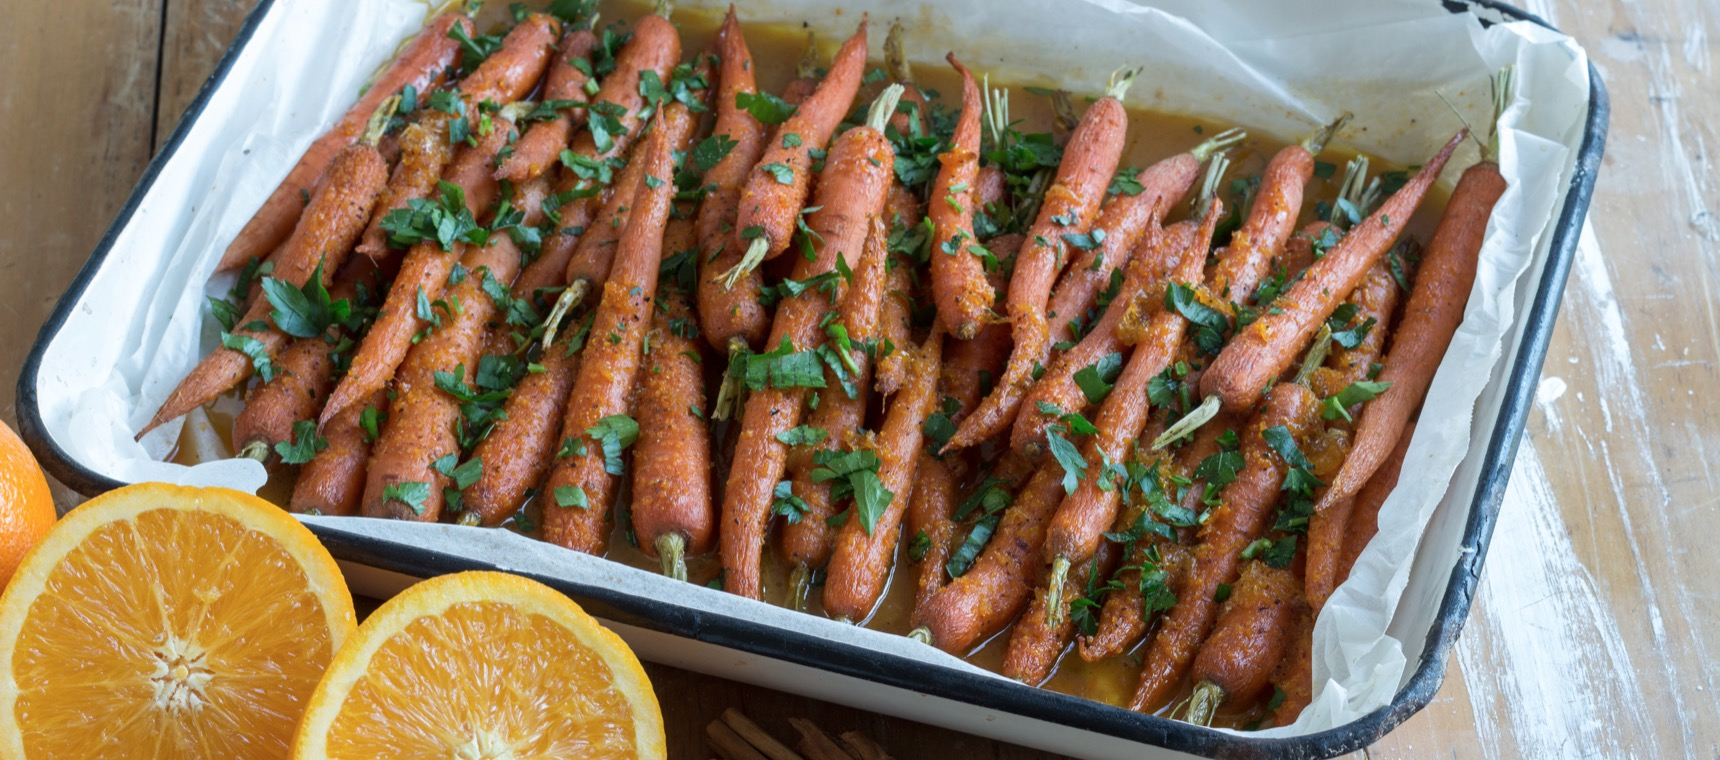 Roasted Orange Cinnamon Carrots